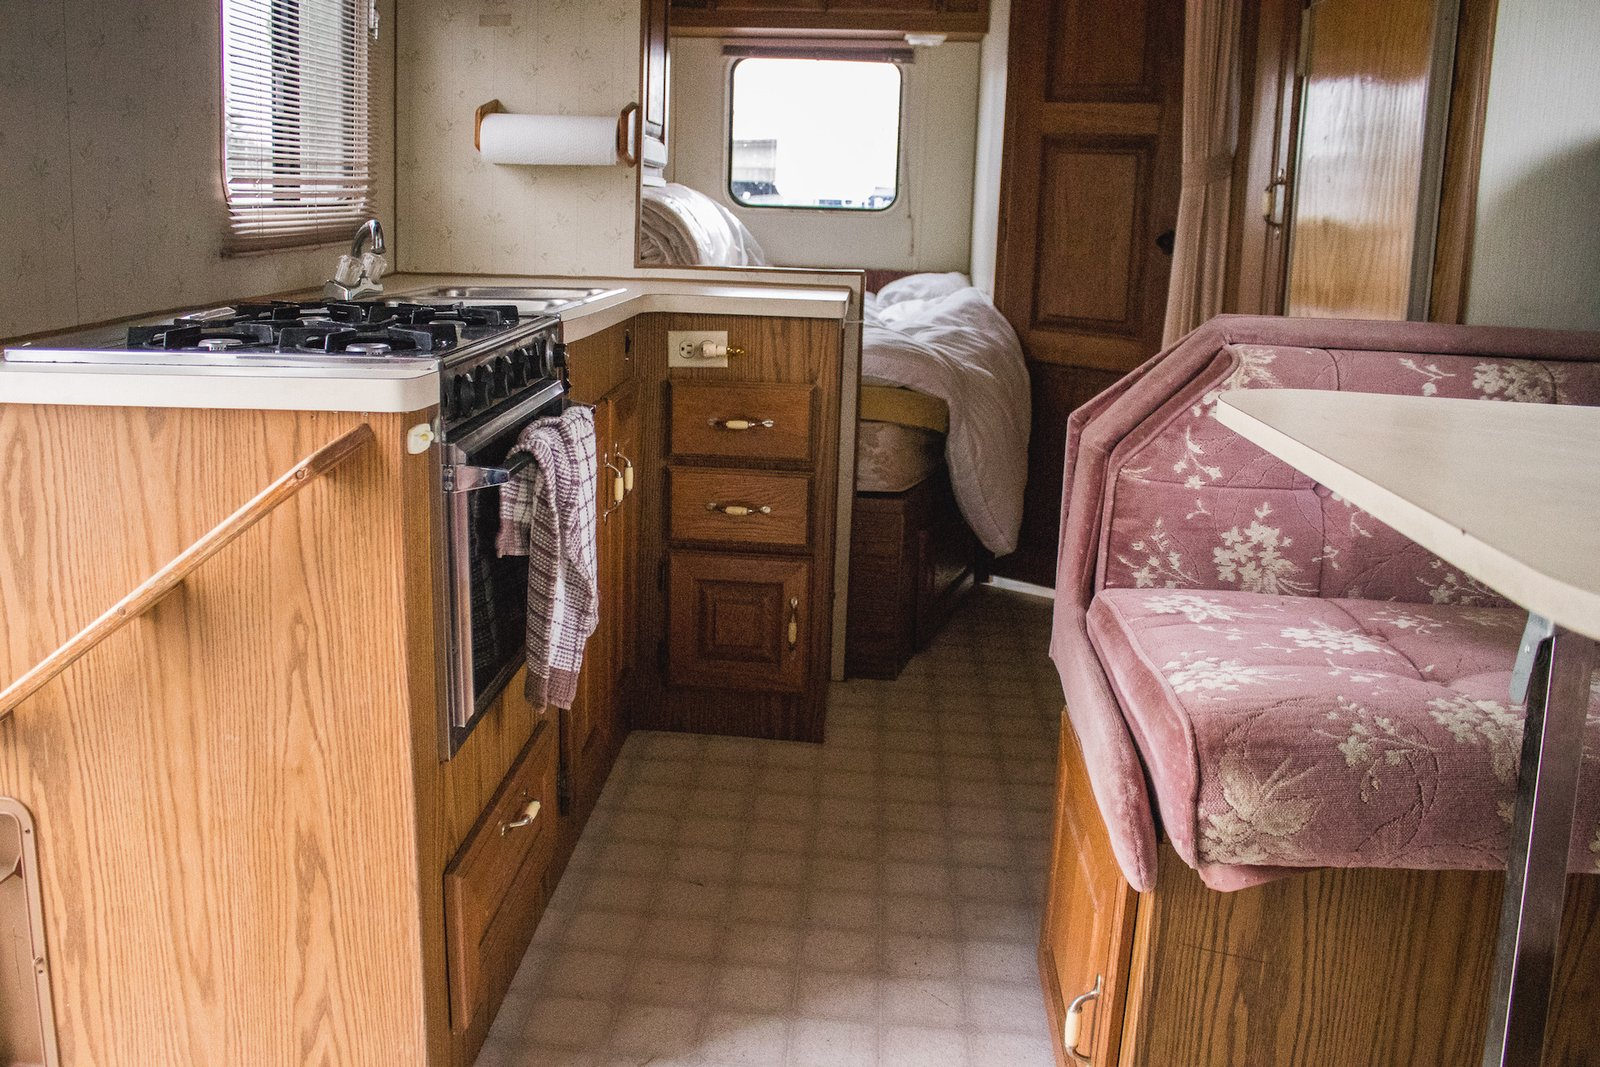 Before & After: A Dull RV Becomes a Cheerful Abode in Just 21 Days